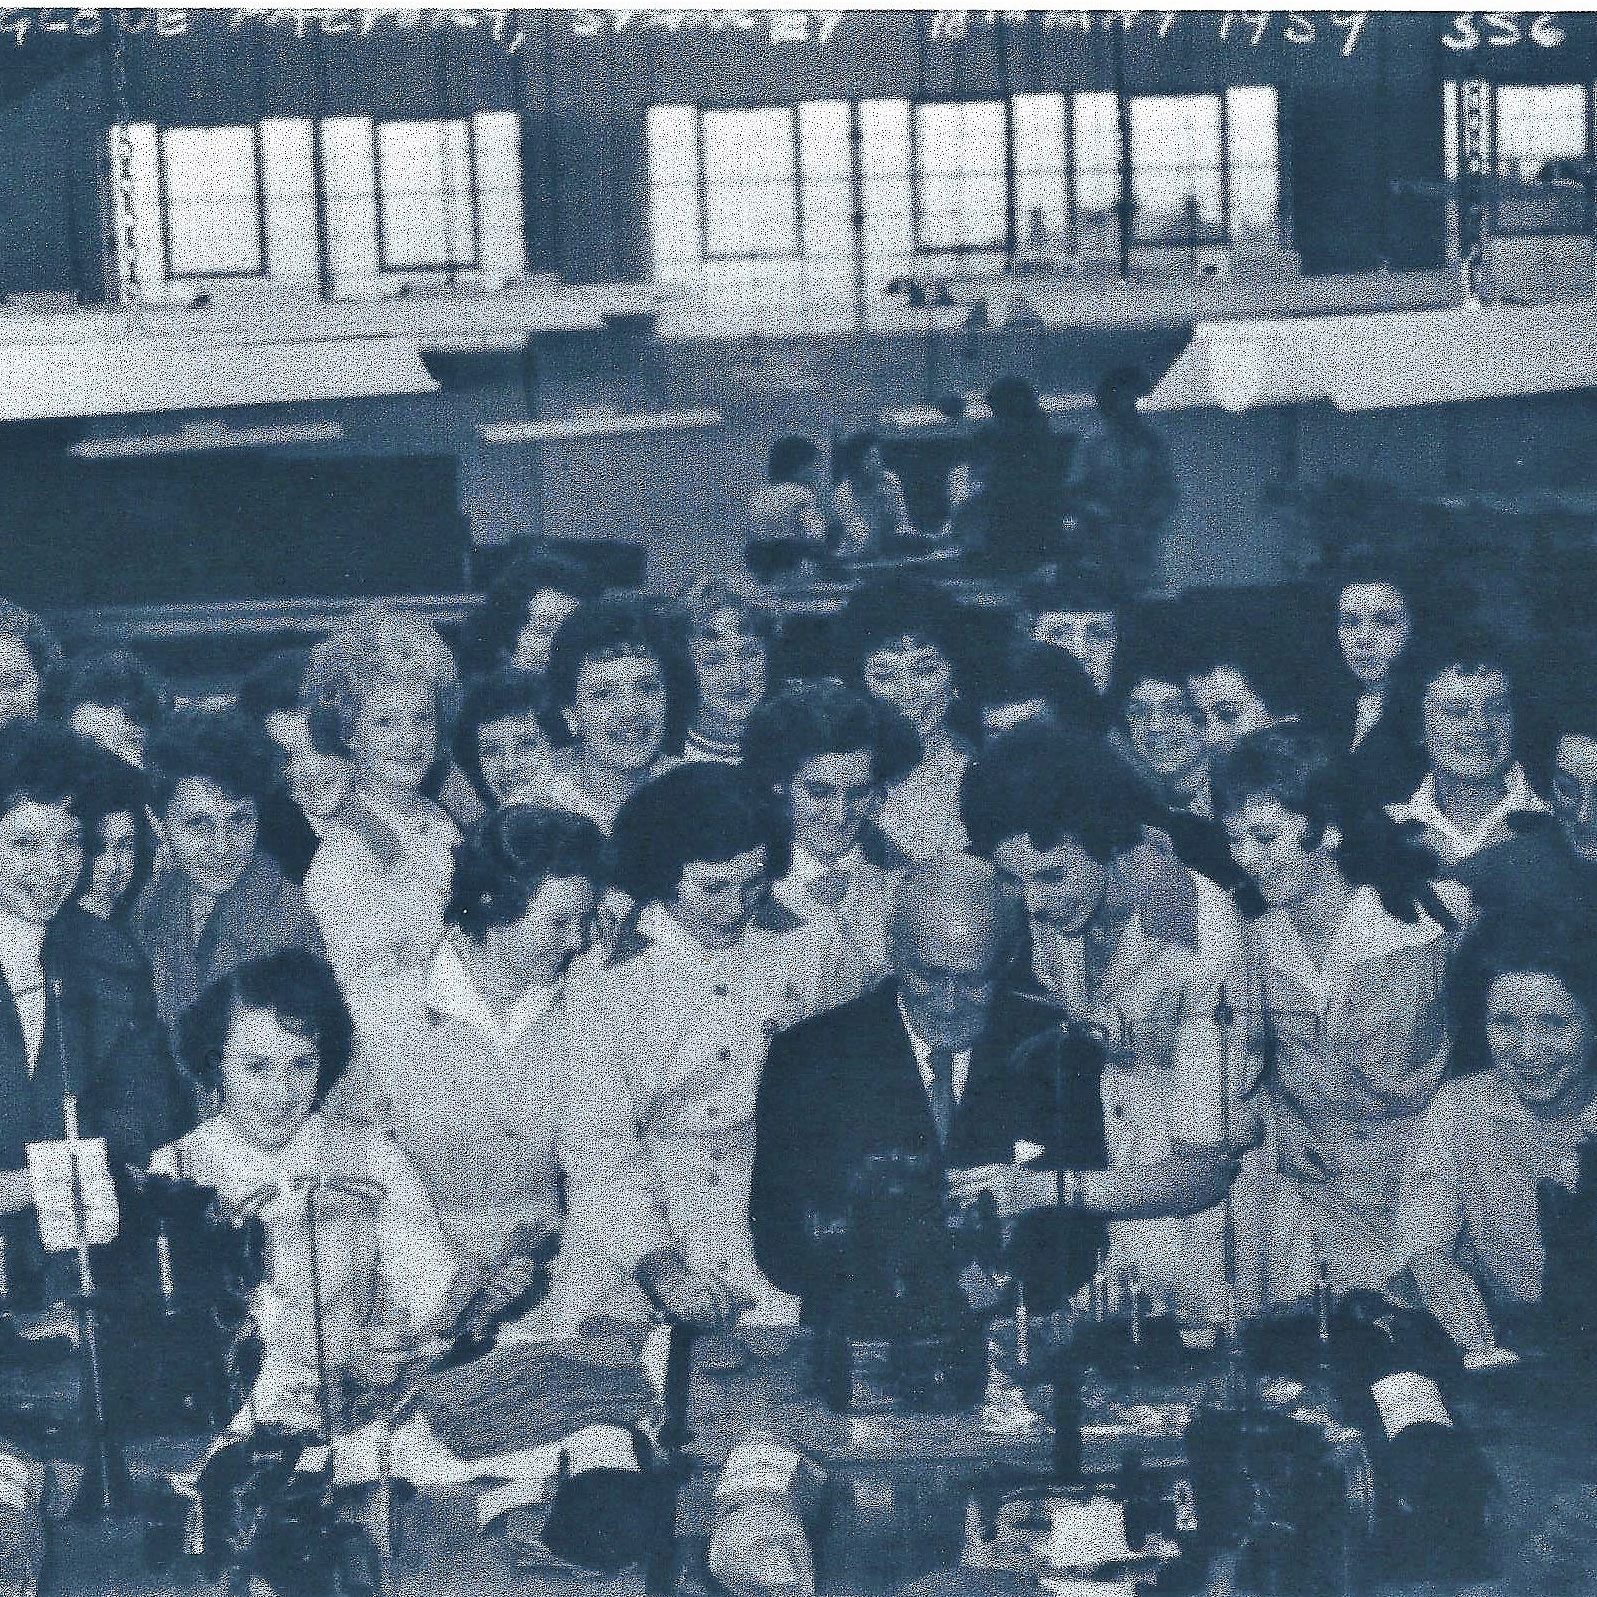 Stanley factory in 1959